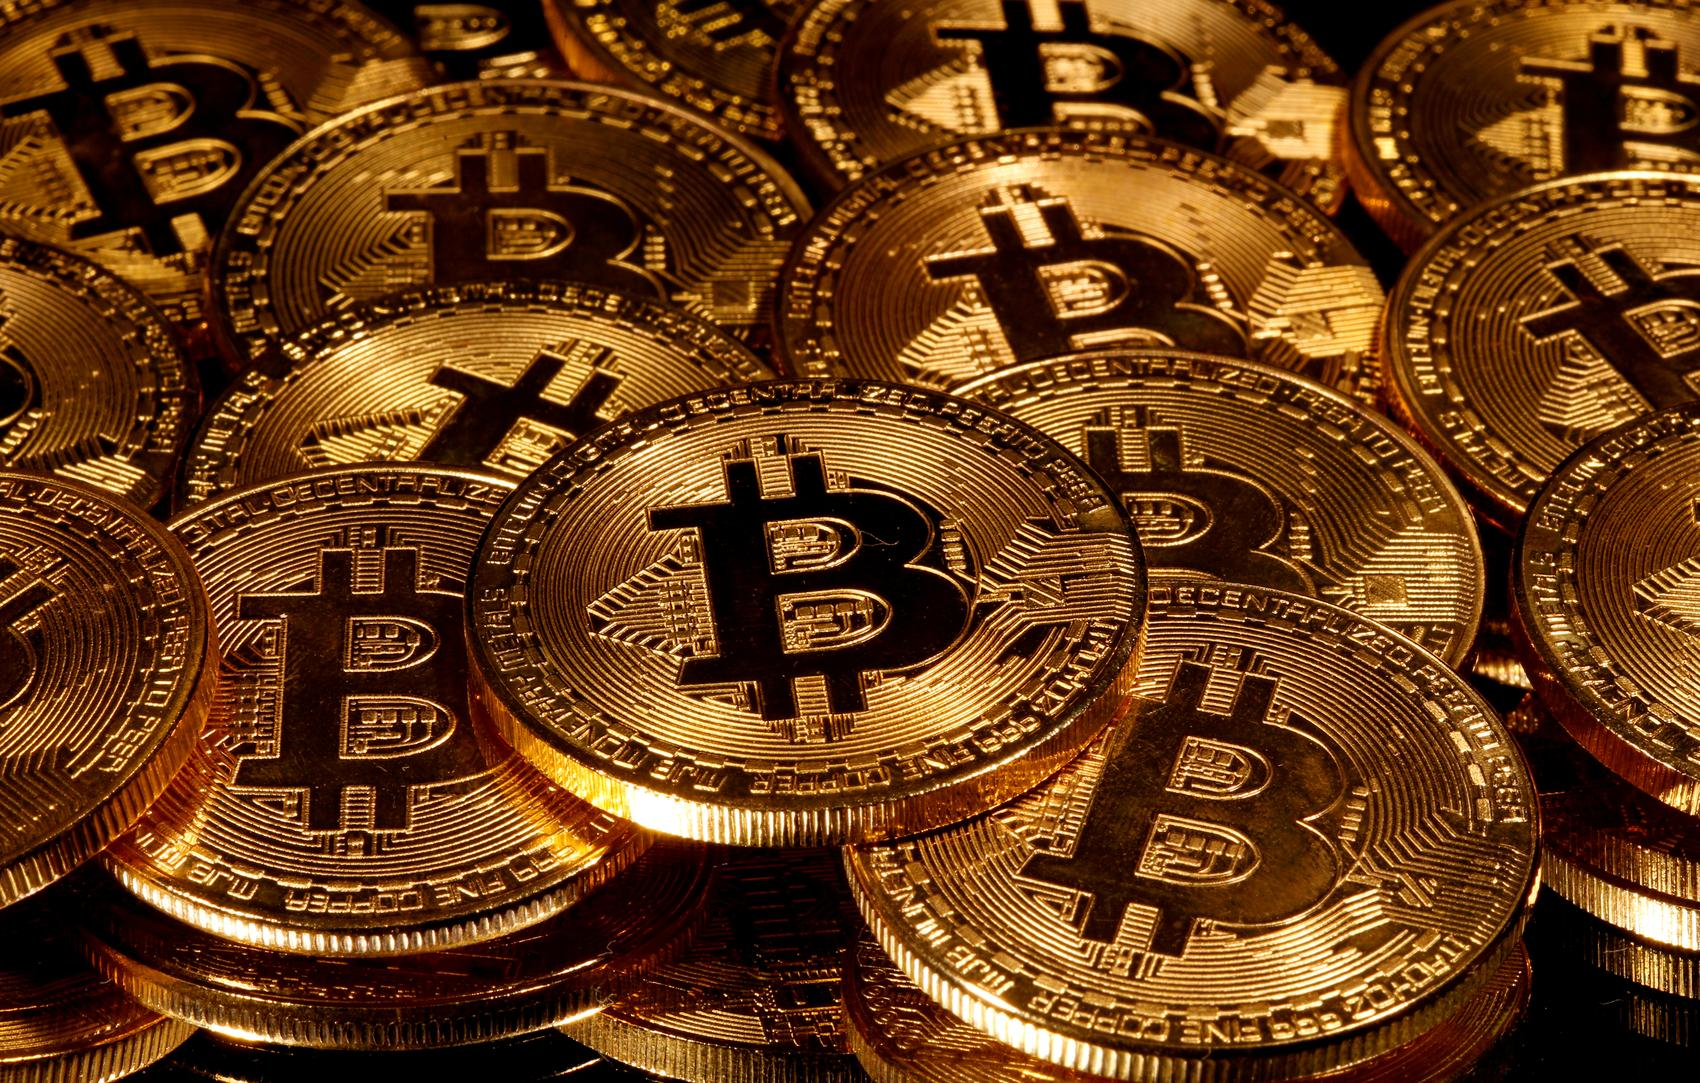 Bitcoin shatters $20,000 barrier for first time